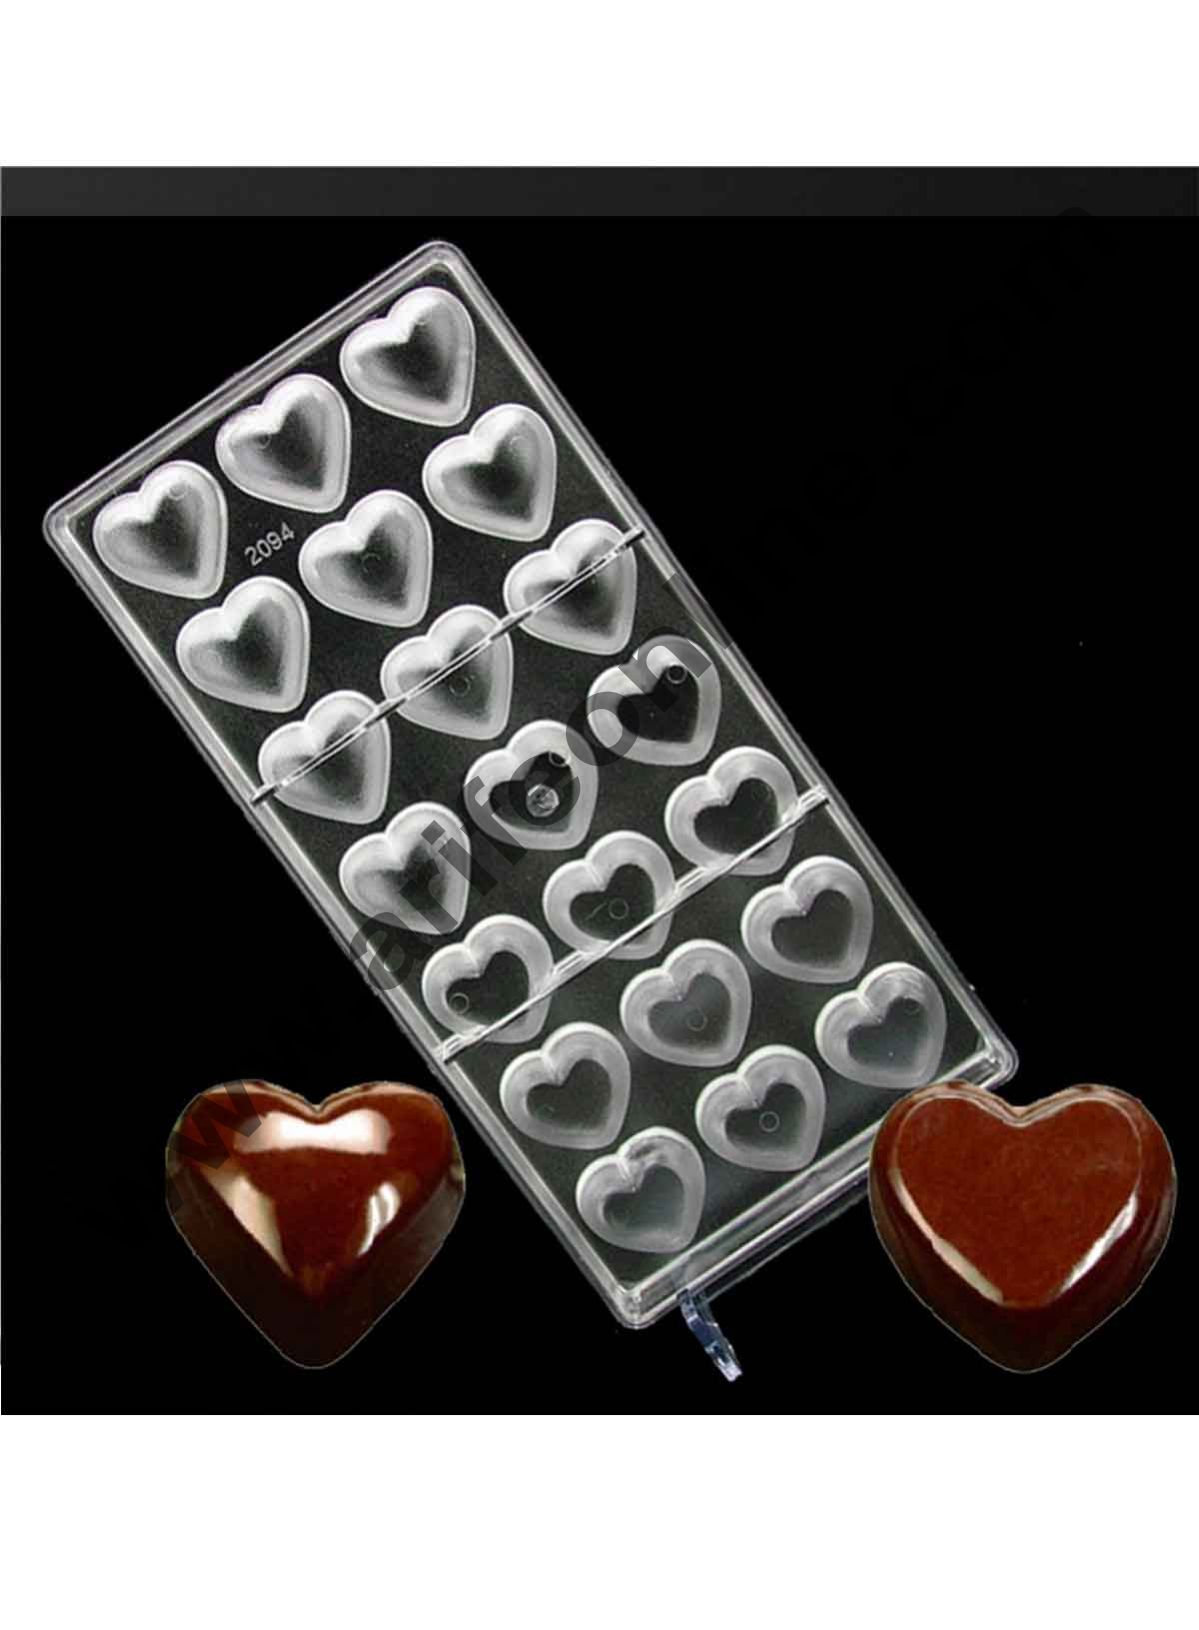 Cake Decor 21 Cavity Heart Clear Polycarbonate Plastic Handmade Chocolate PC Mold, Chocolate Tools, Love Valentine's Day Gift for Lover-in Baking & Pastry Tools